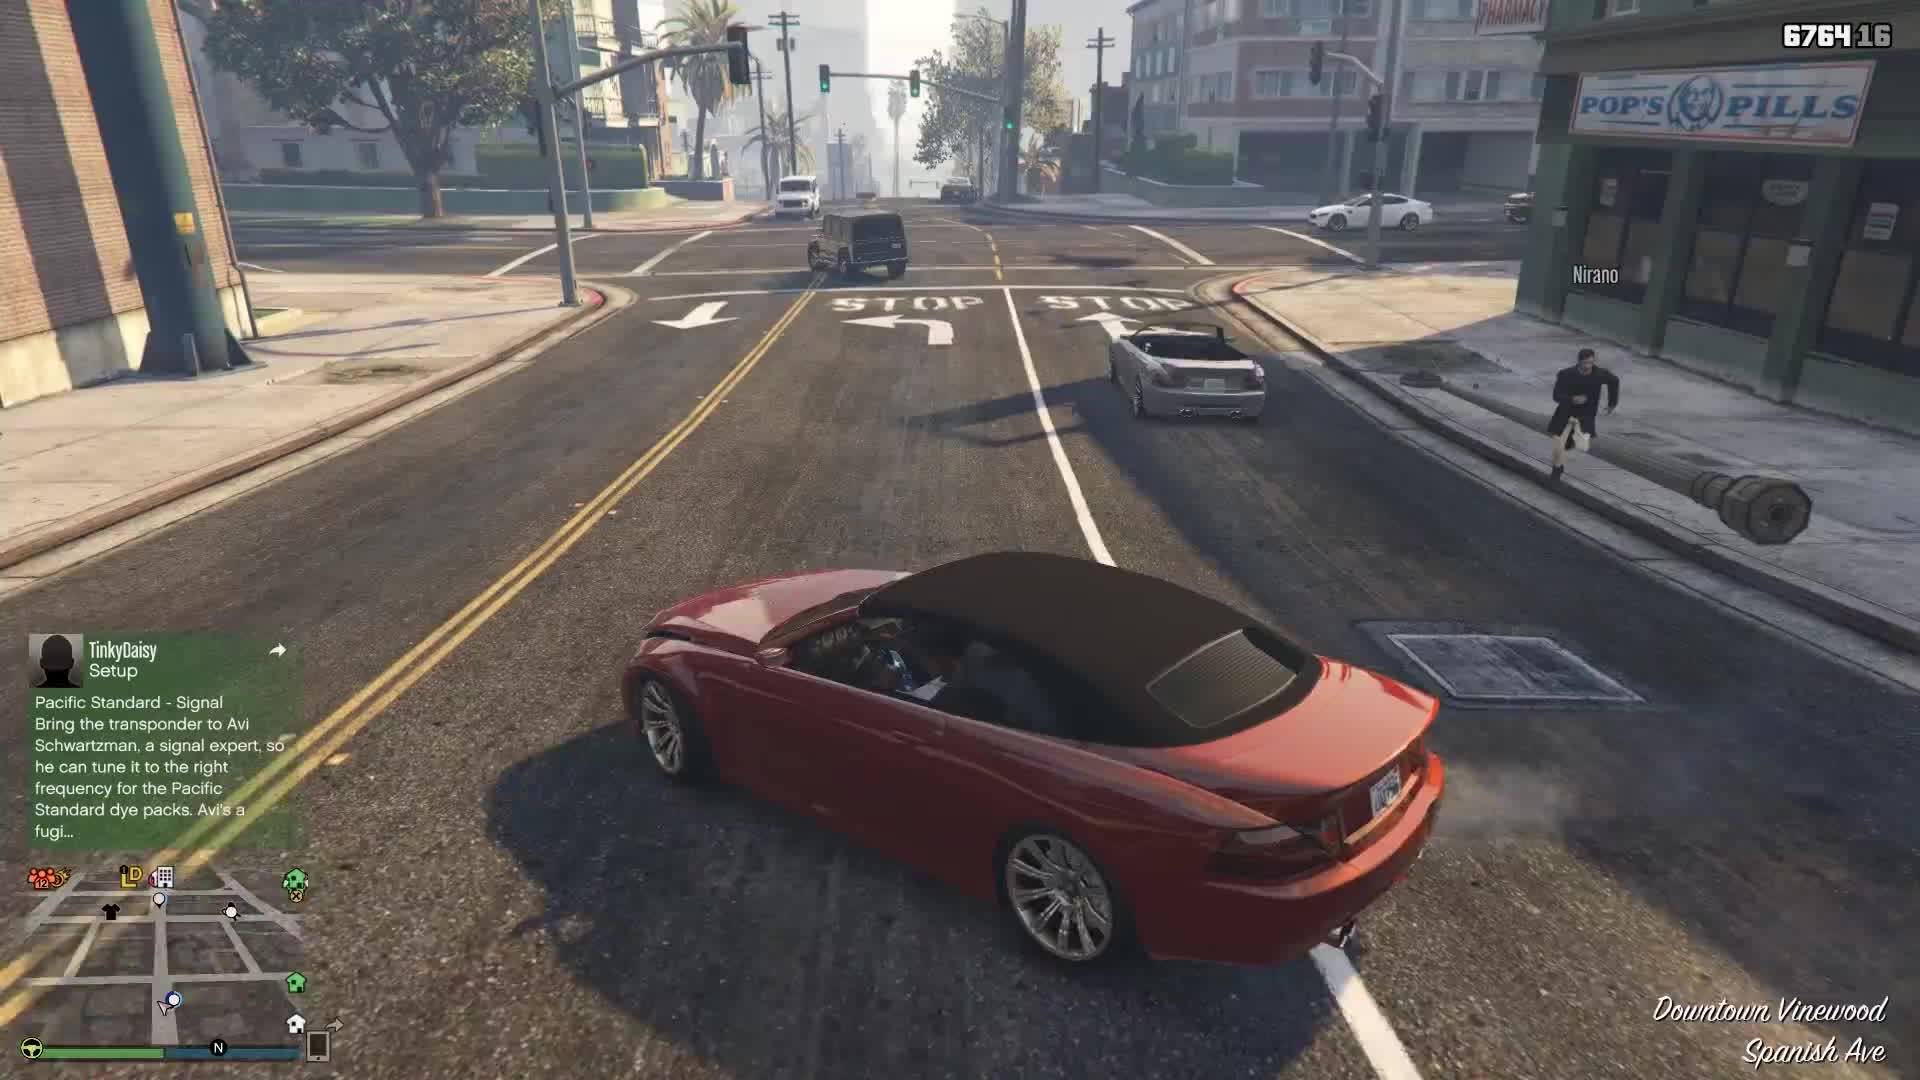 GrandTheftAutoV, gaming, youtube editor, [GTAV] - Crushed. GIFs